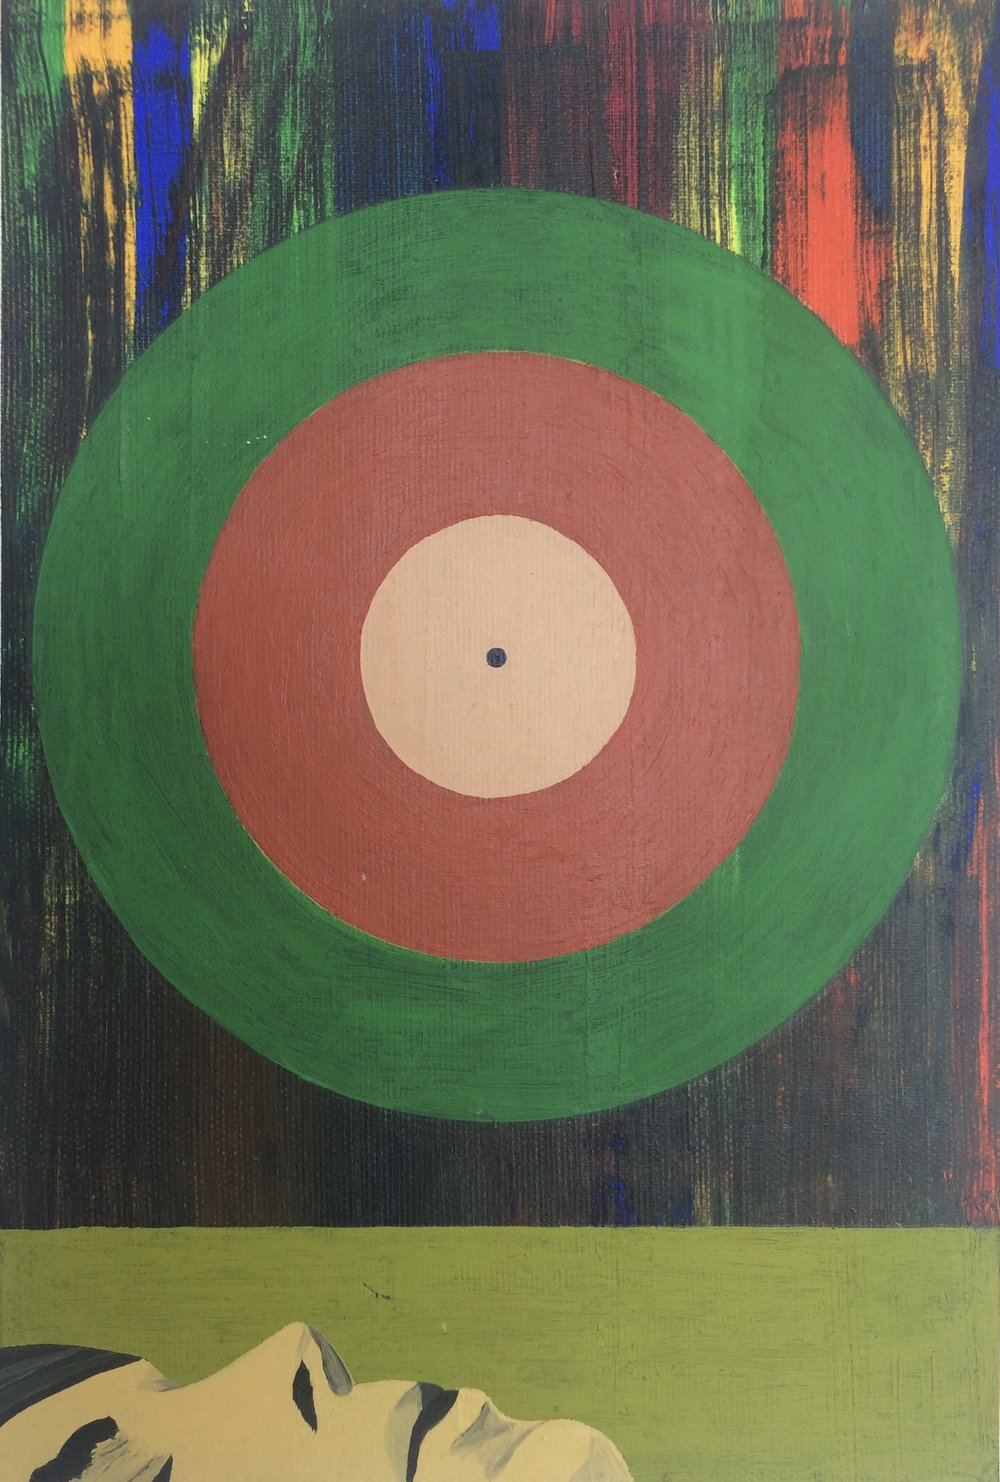 Target the Sun - 1997 - 13x9.5 Oil on Canvas